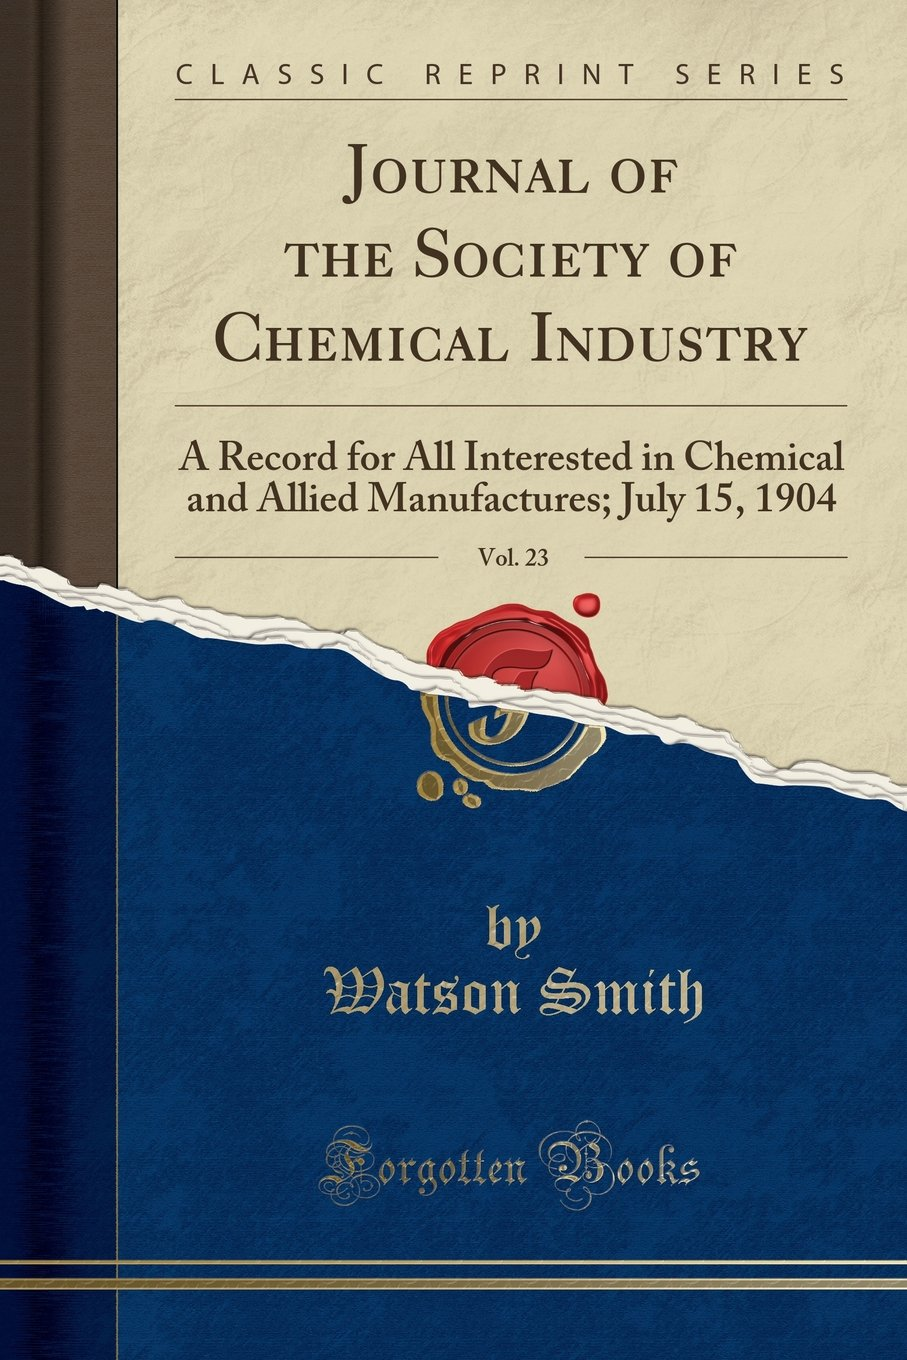 Read Online Journal of the Society of Chemical Industry, Vol. 23: A Record for All Interested in Chemical and Allied Manufactures; July 15, 1904 (Classic Reprint) PDF